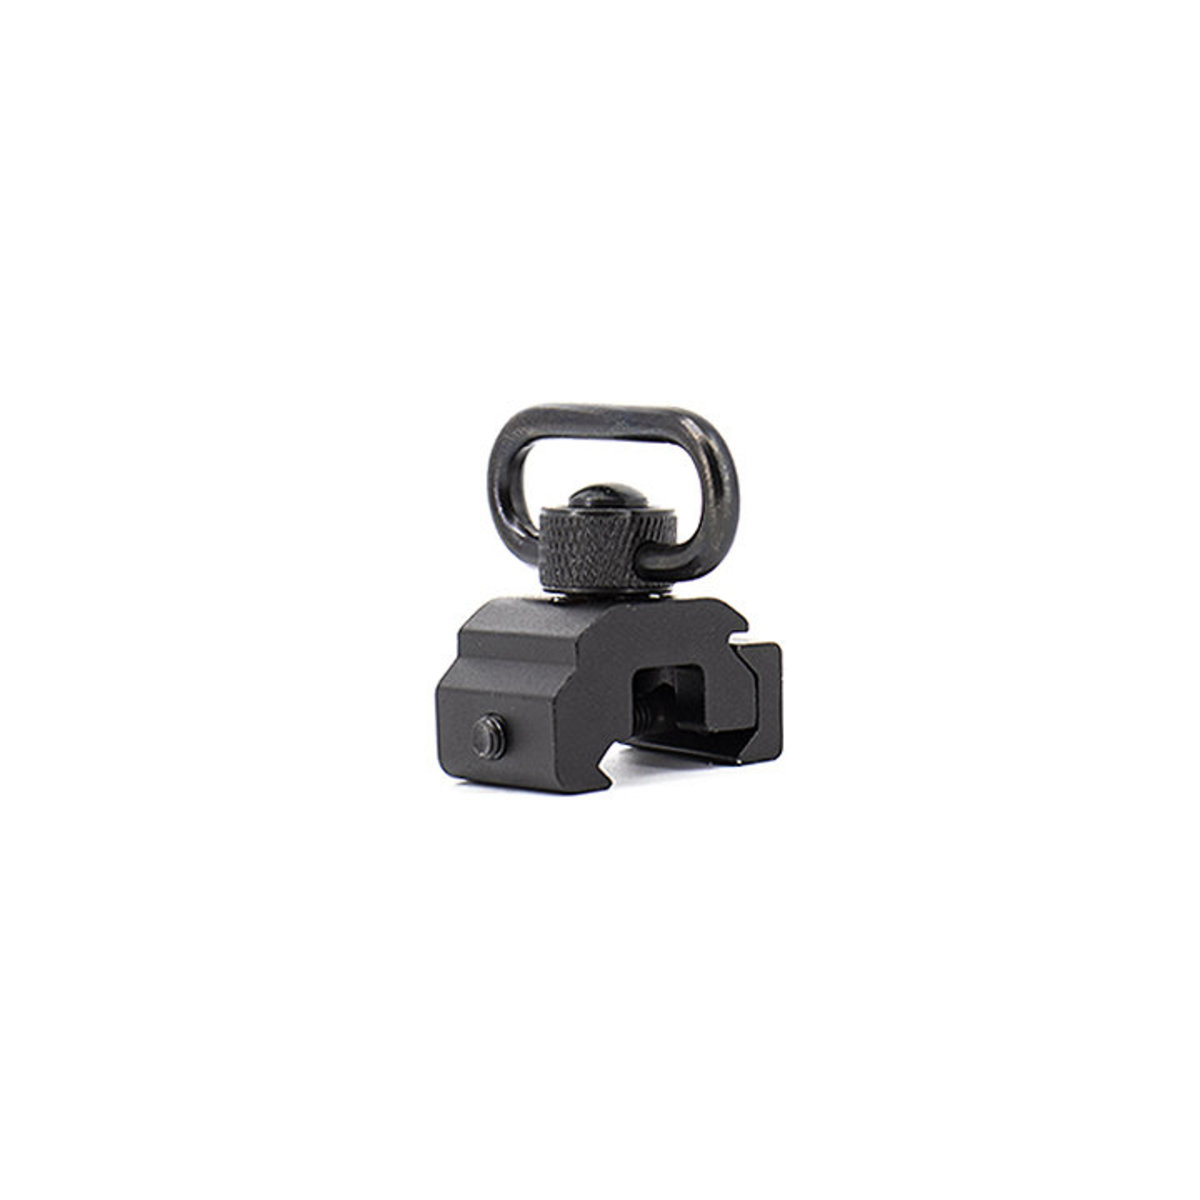 View larger image of Valken QD Sling Swivel